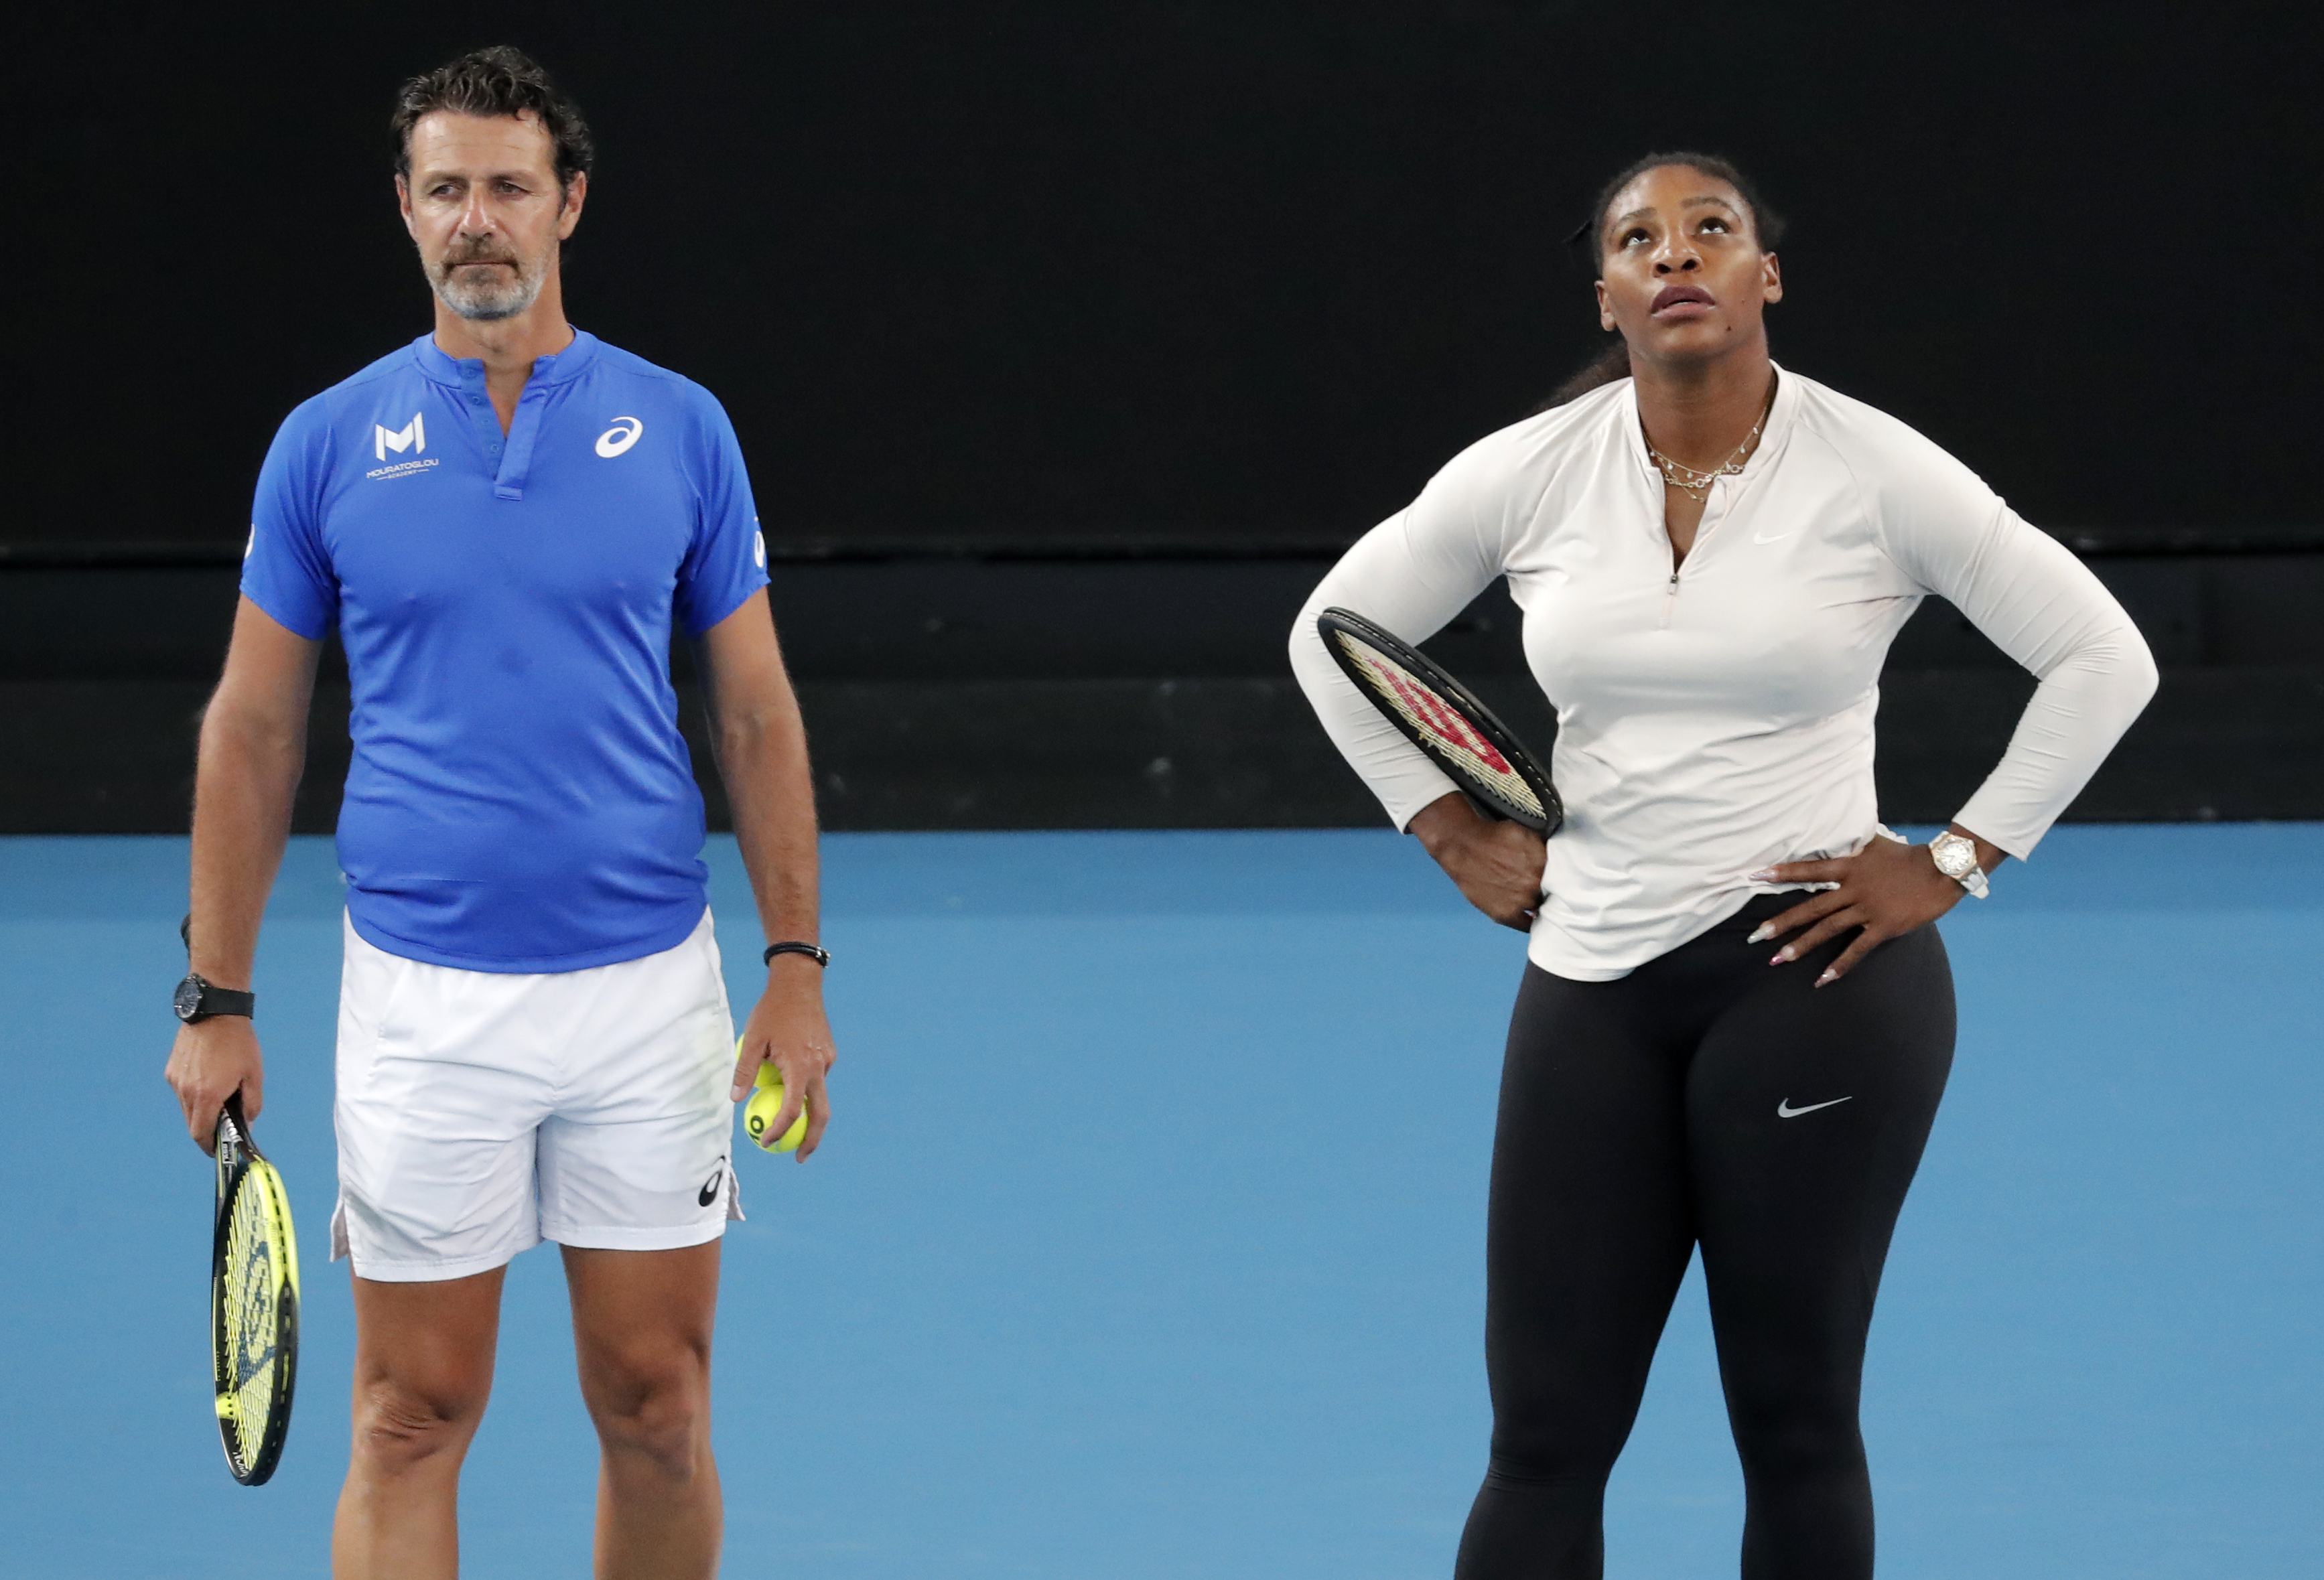 Serena Williams Coach To Start Tennis League To Help Fill Competition Void